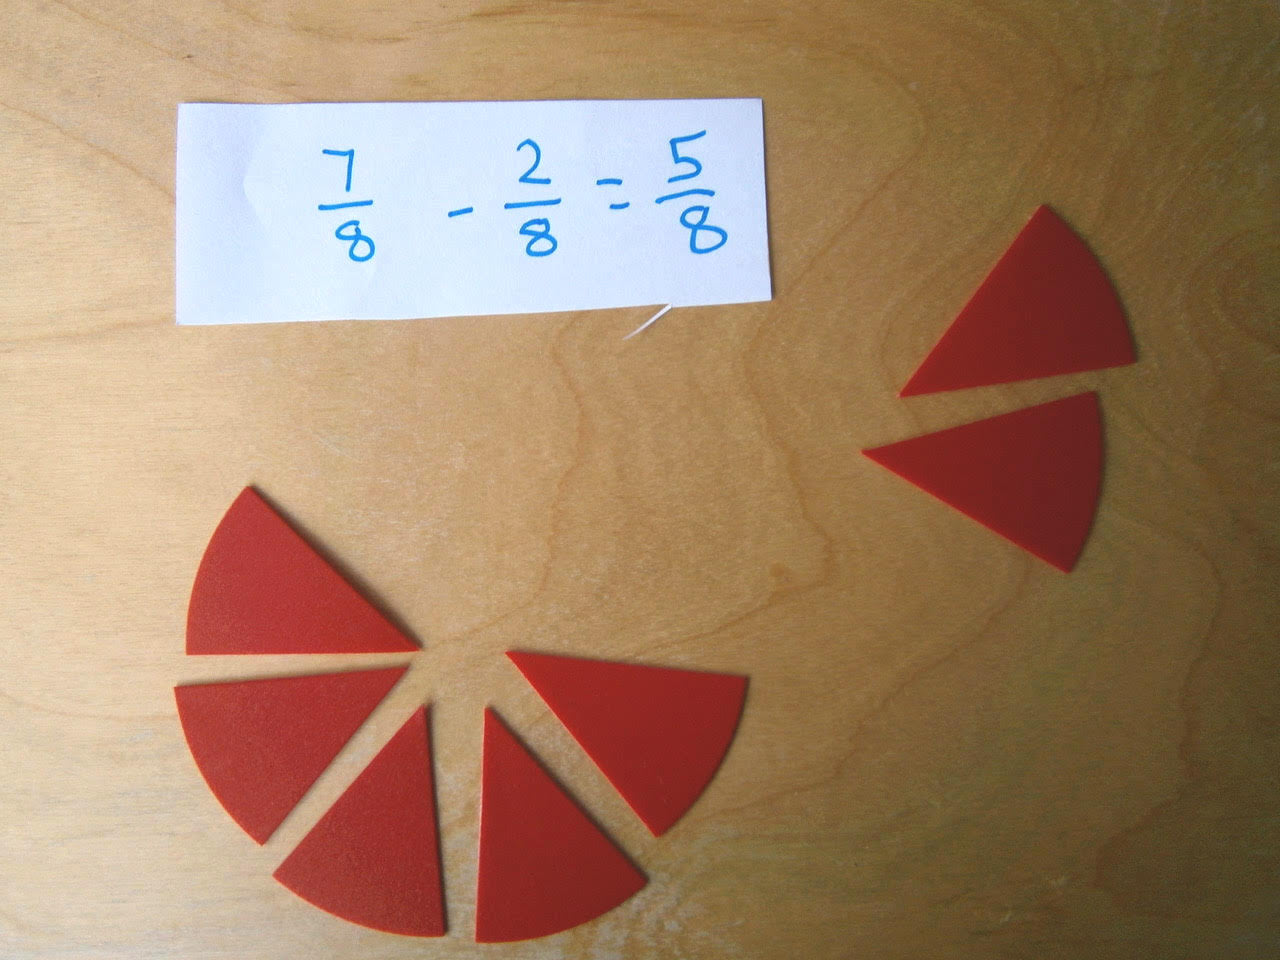 Subtracting fractions with Montessori